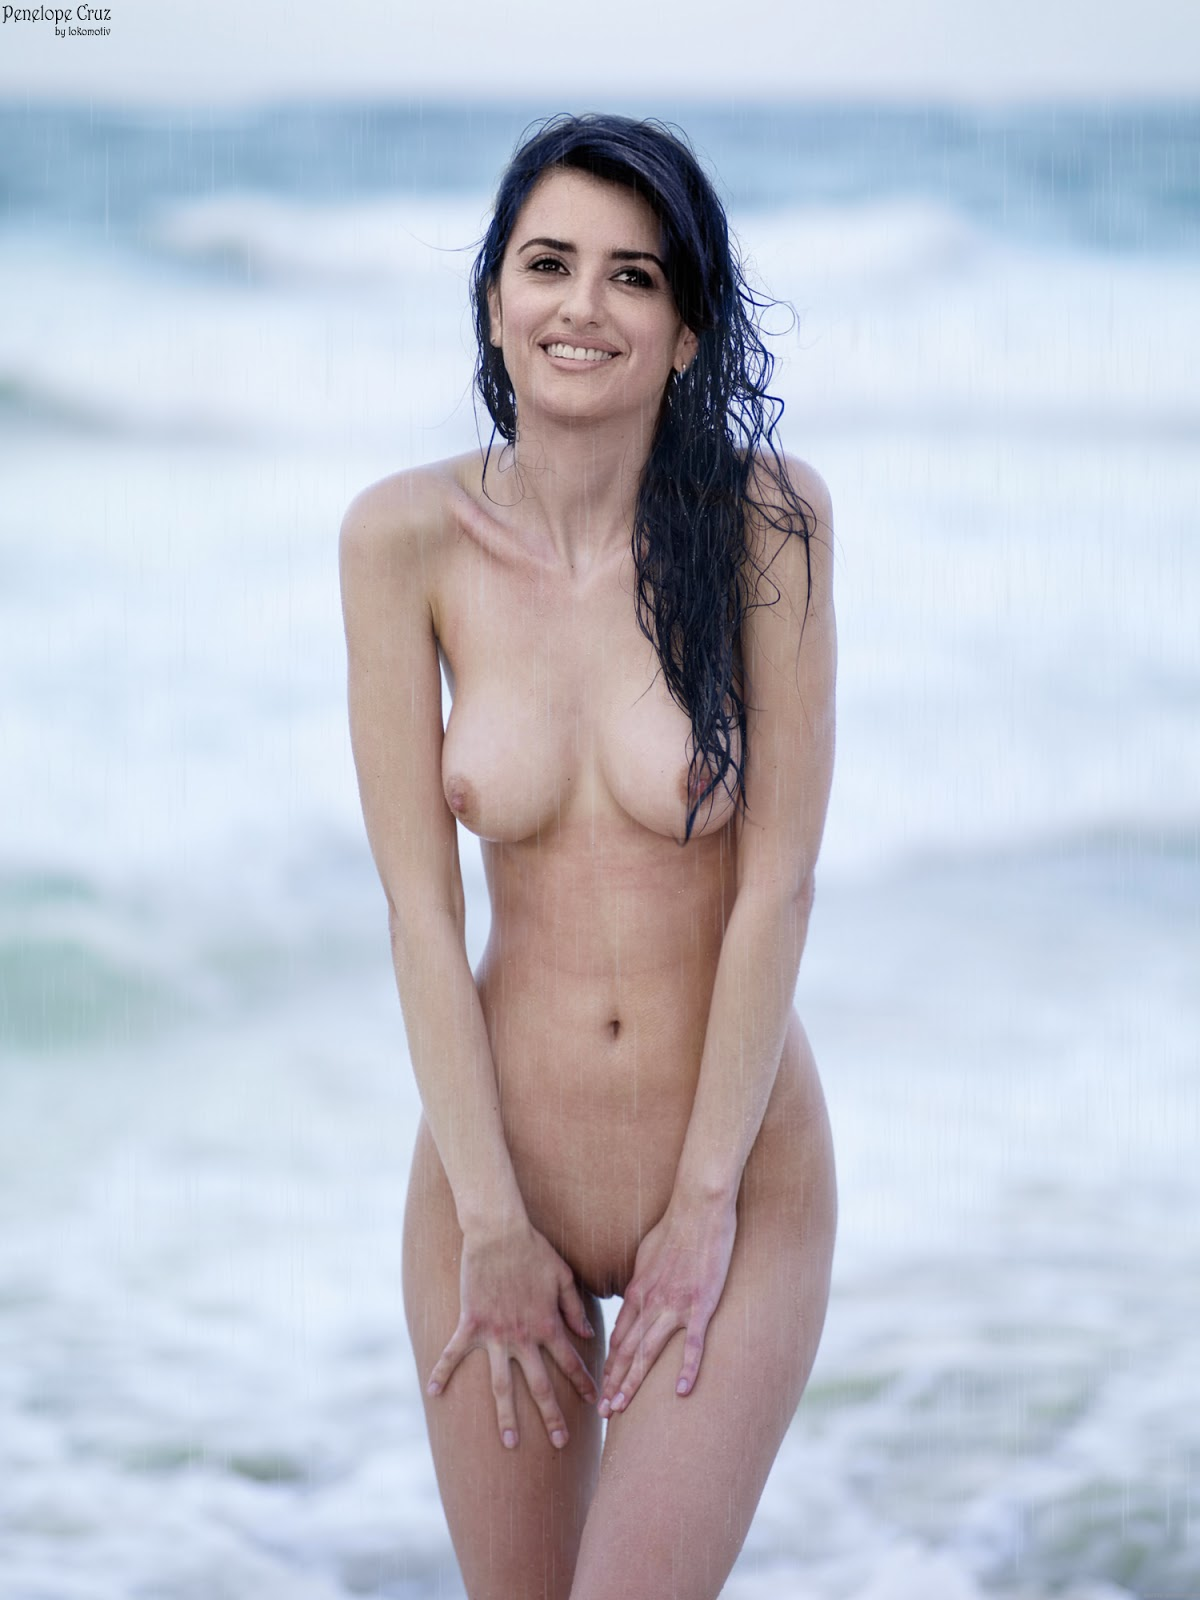 Nude penelope video cruz